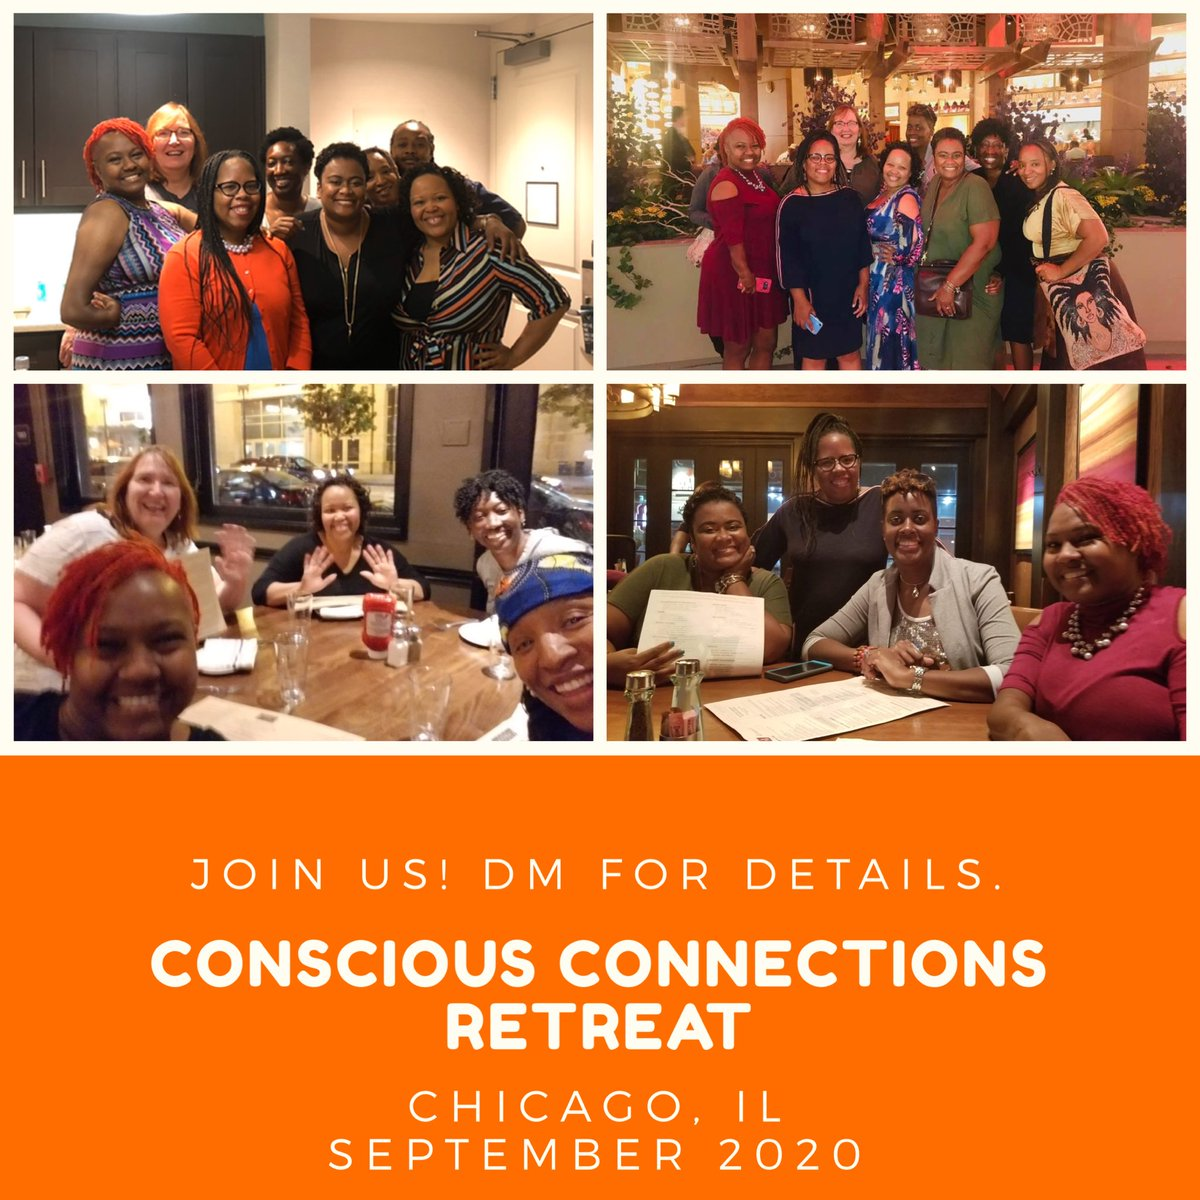 The Chicago C4C Conscious Connections Retreat registration remains open. The retreat will be held September 2020. Deposit is due with your registration submission. If interested, send us a DM. Consider joining us in Chicago! #c4ctravel #c4ctravel2020  #c4cglobal1pic.twitter.com/NJP0W1vO9d